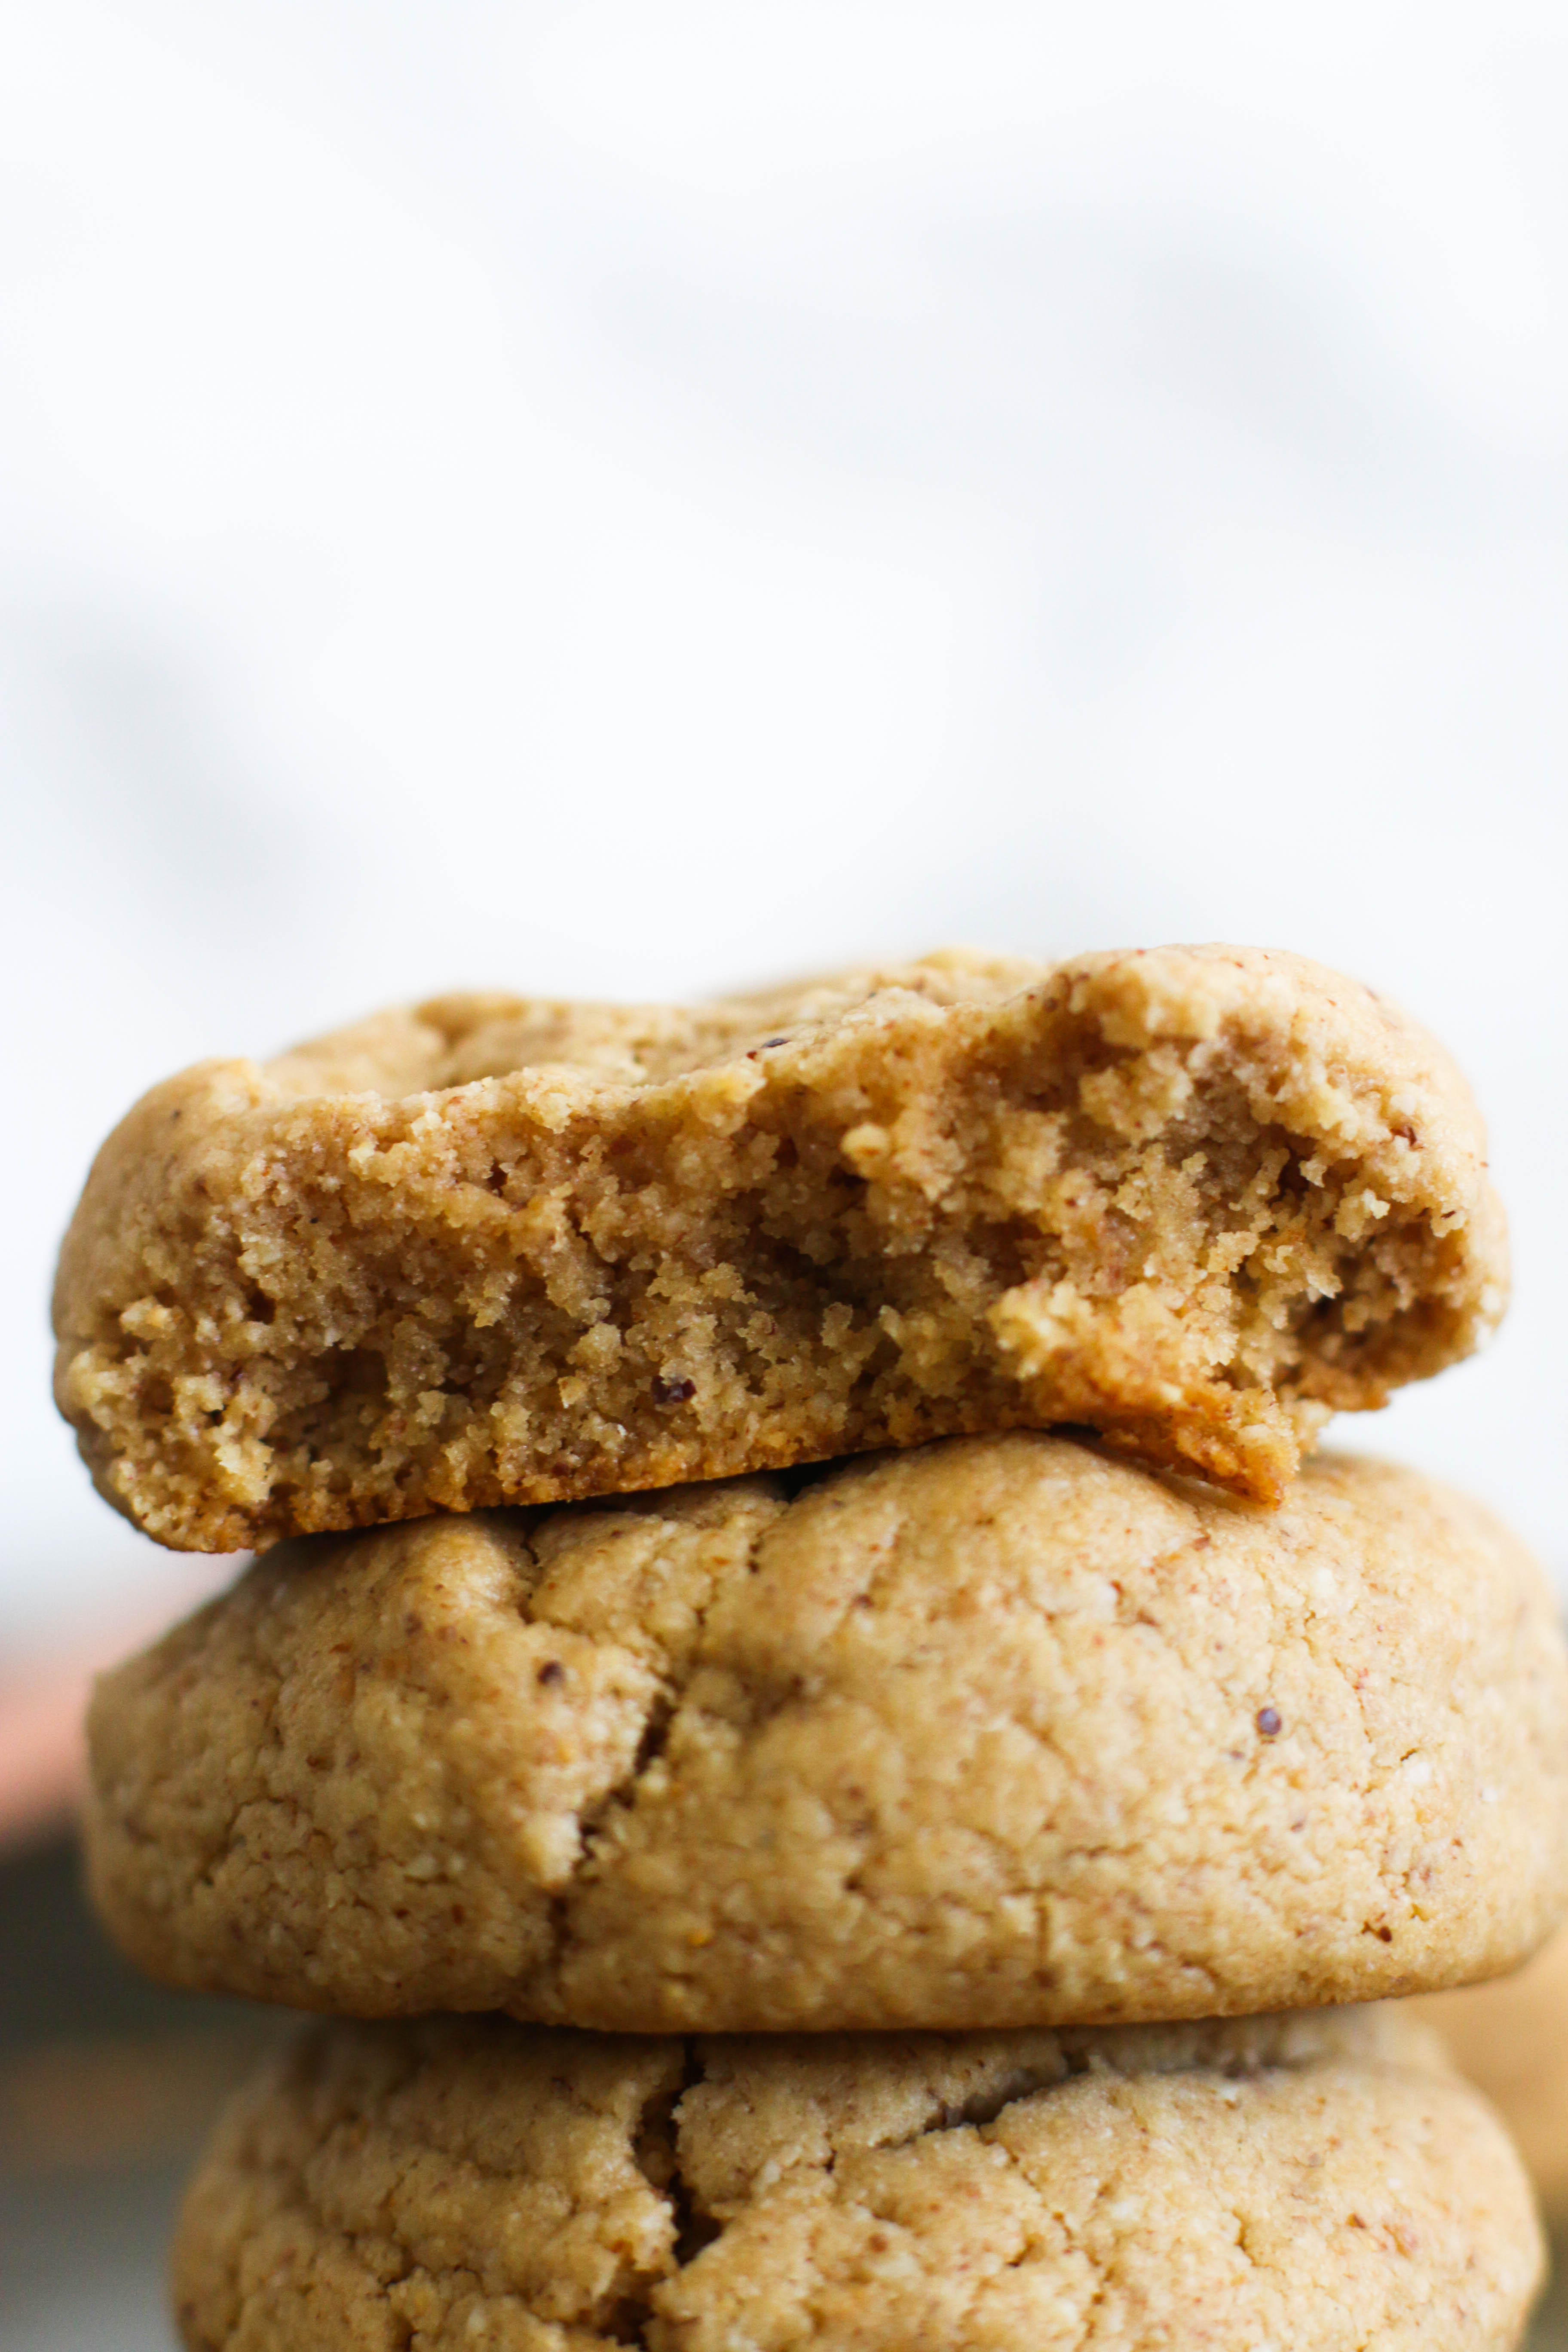 These soft & chewy almond butter cookies are vegan, gluten free, paleo, and the perfect treat. They're naturally sweet, filled with flavor, and require eight ingredients.